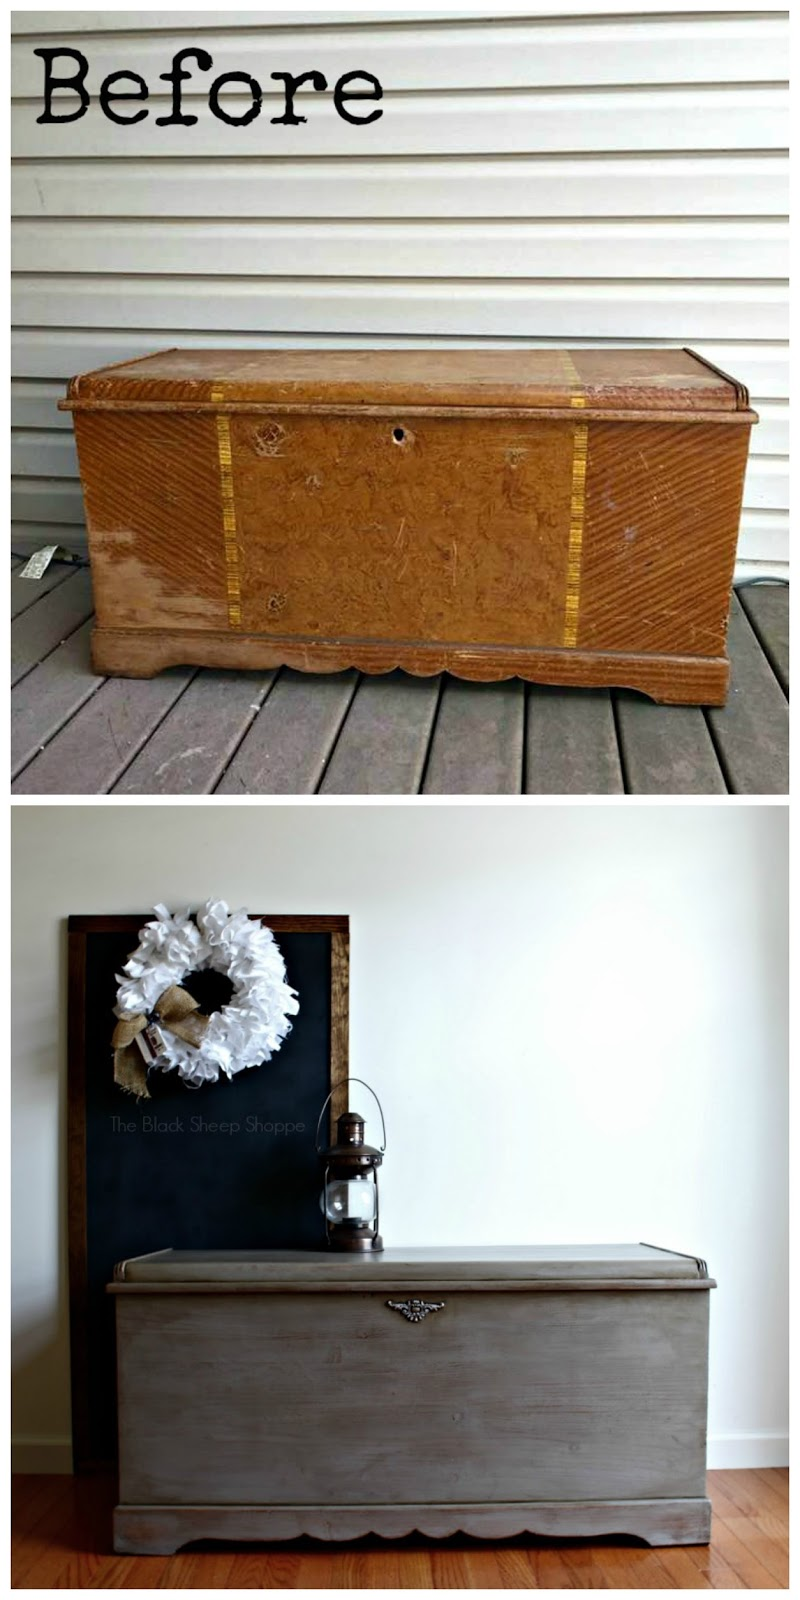 Before and after photo of cedar chest.